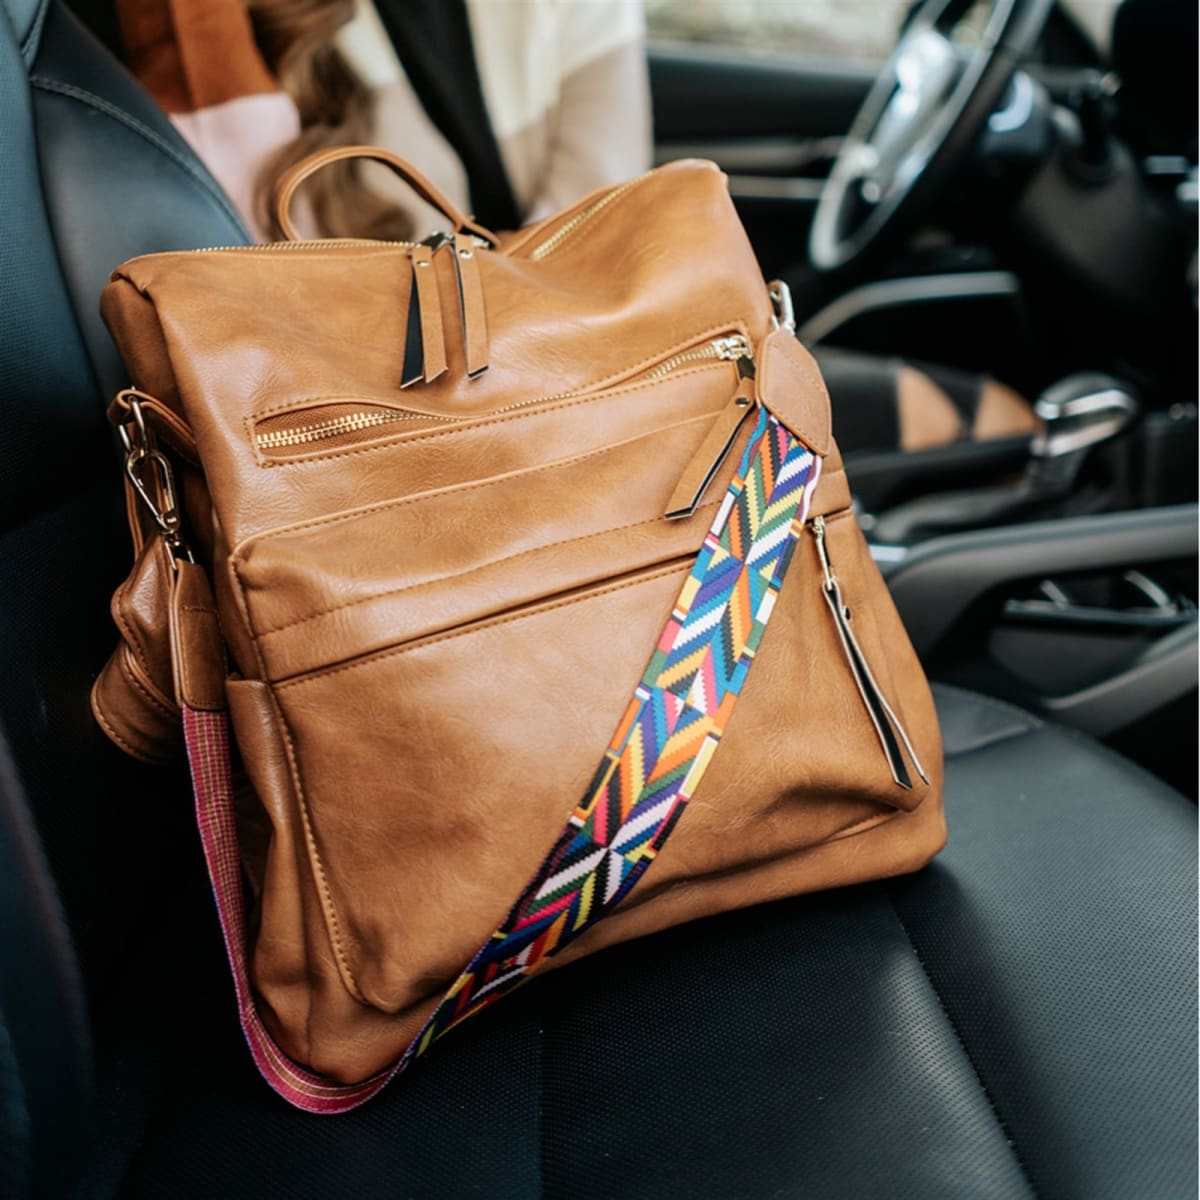 .99 Essential Convertible Bag + Colorful Strap + Free shipping at Jane!